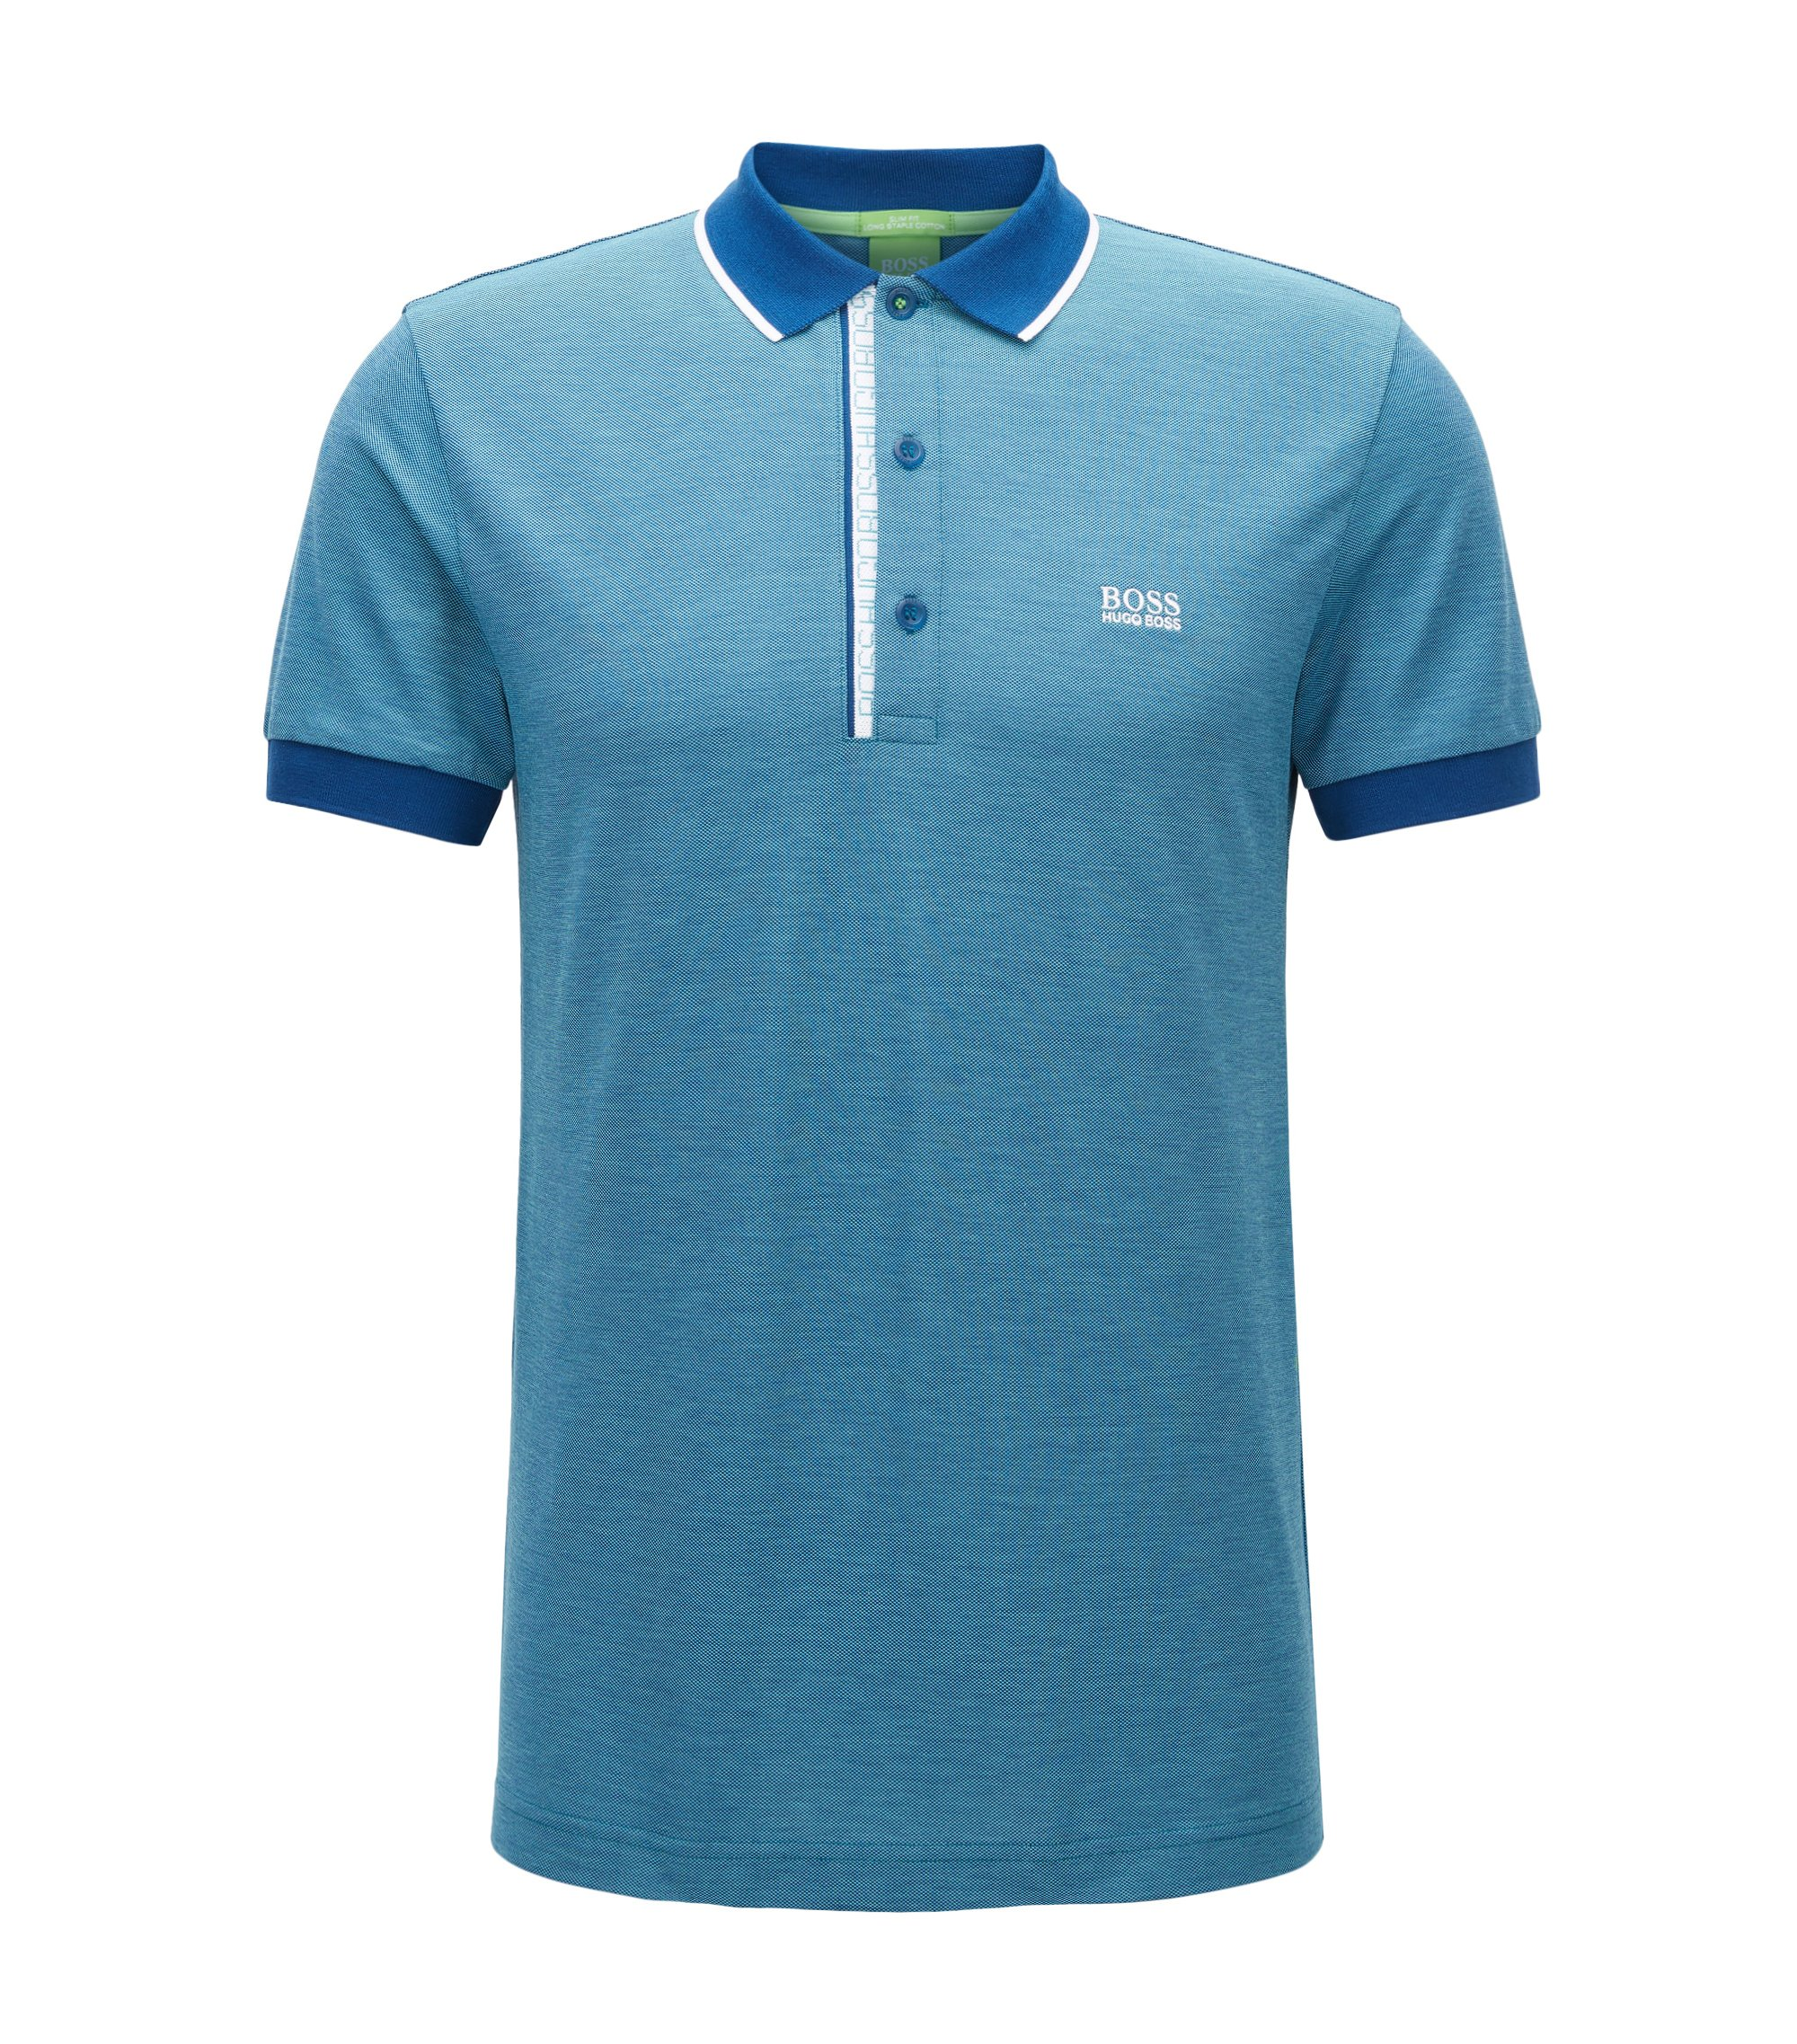 Slim-fit logo polo shirt in cotton piqué, Turquoise